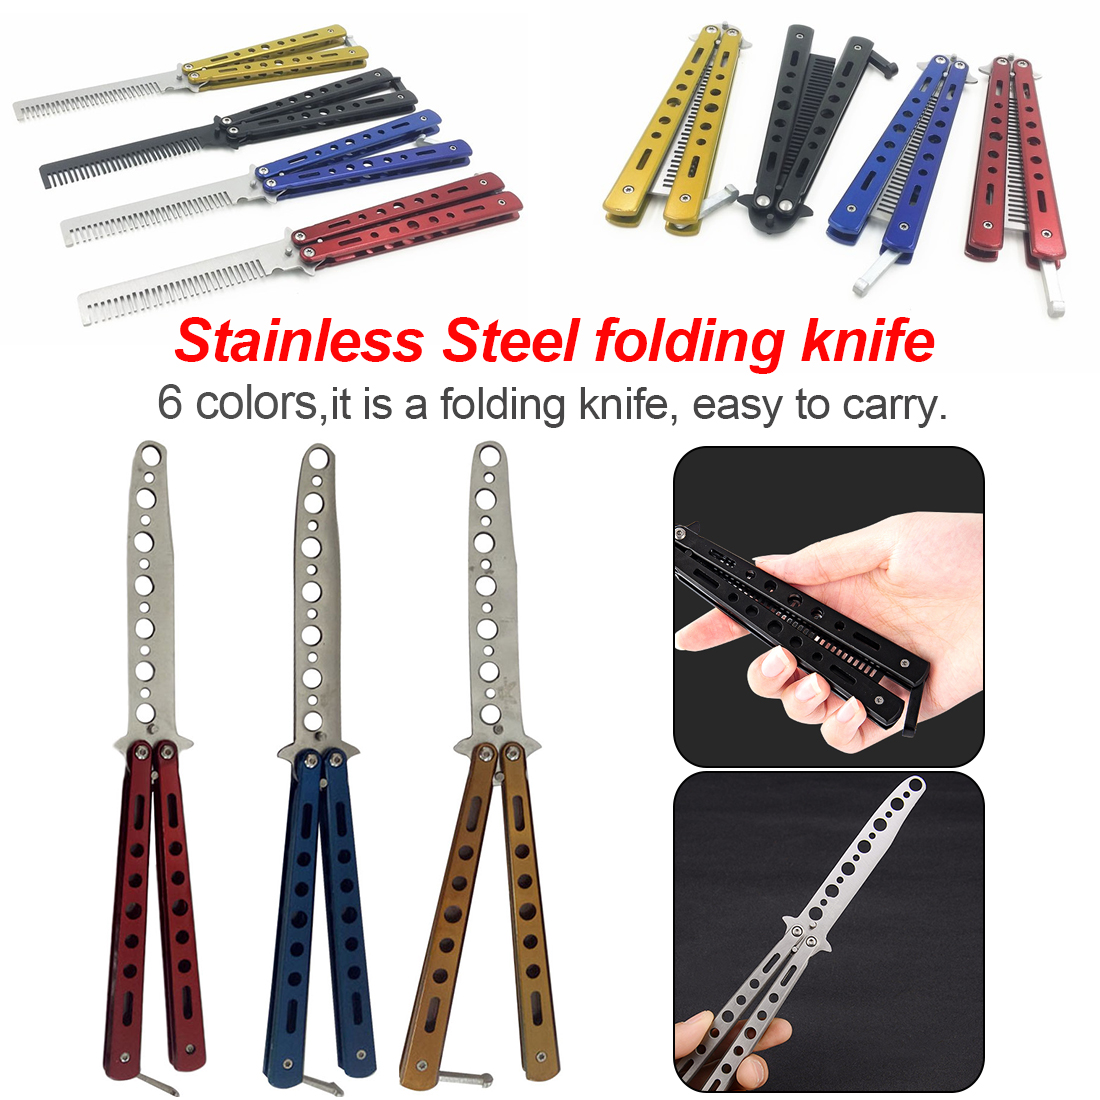 Stainless Steel Practice Dull Blade Flail Combat Fight Fold Mariposa Train Butterfly Balisong Knife Comb Trainer image